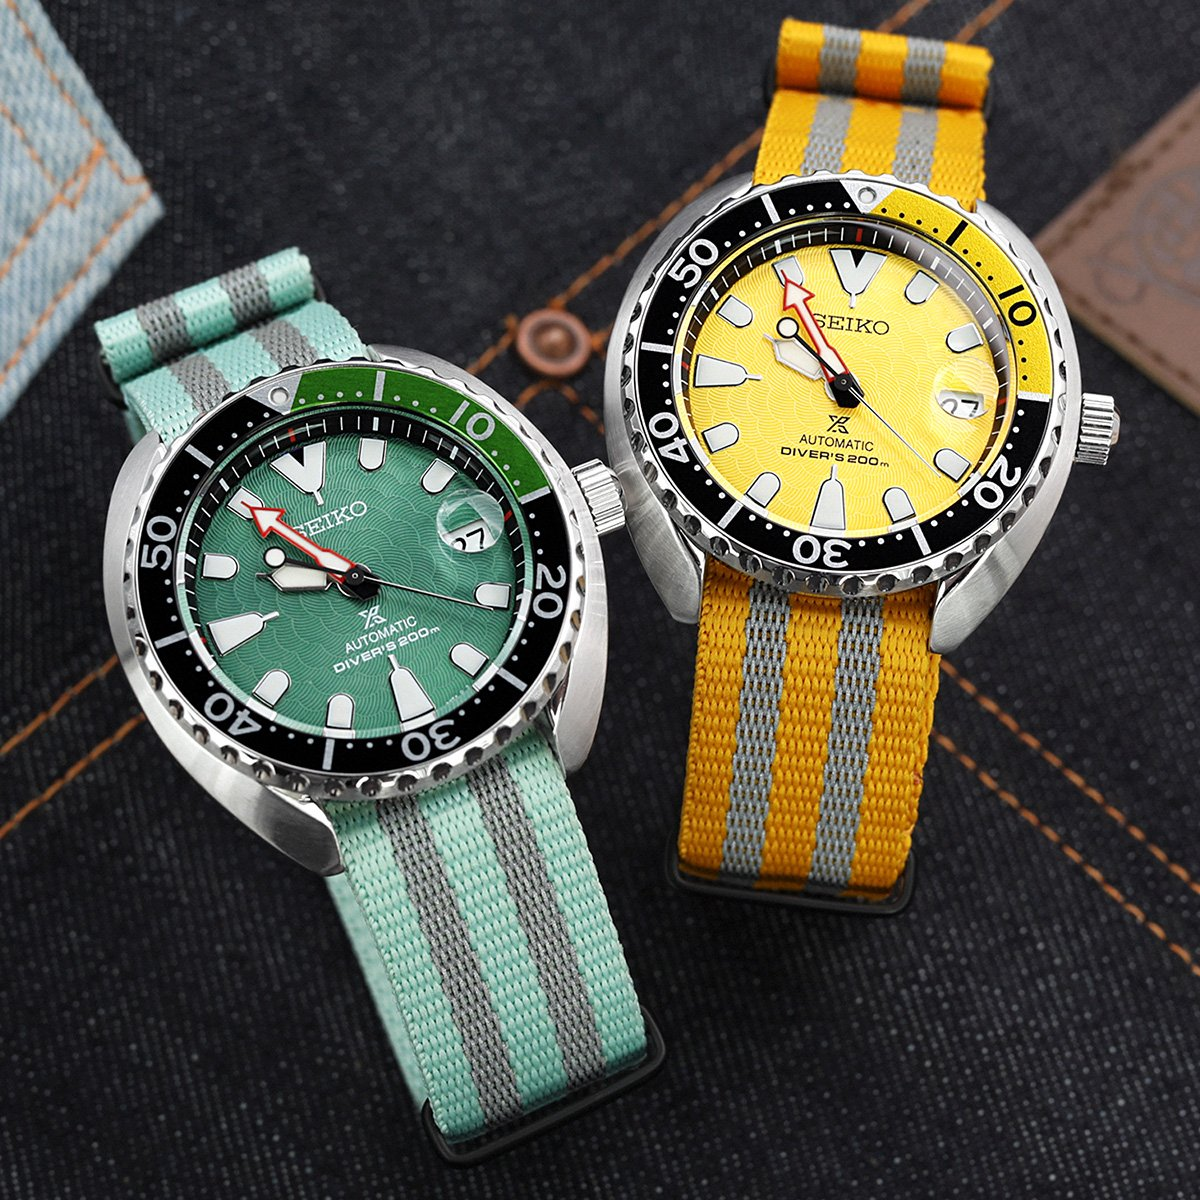 MiLTAT 20mm G10 NATO 3M Glow-in-the-Dark Watch Strap PVD Black Pastel Green & Grey Stripes Strapcode Watch Bands